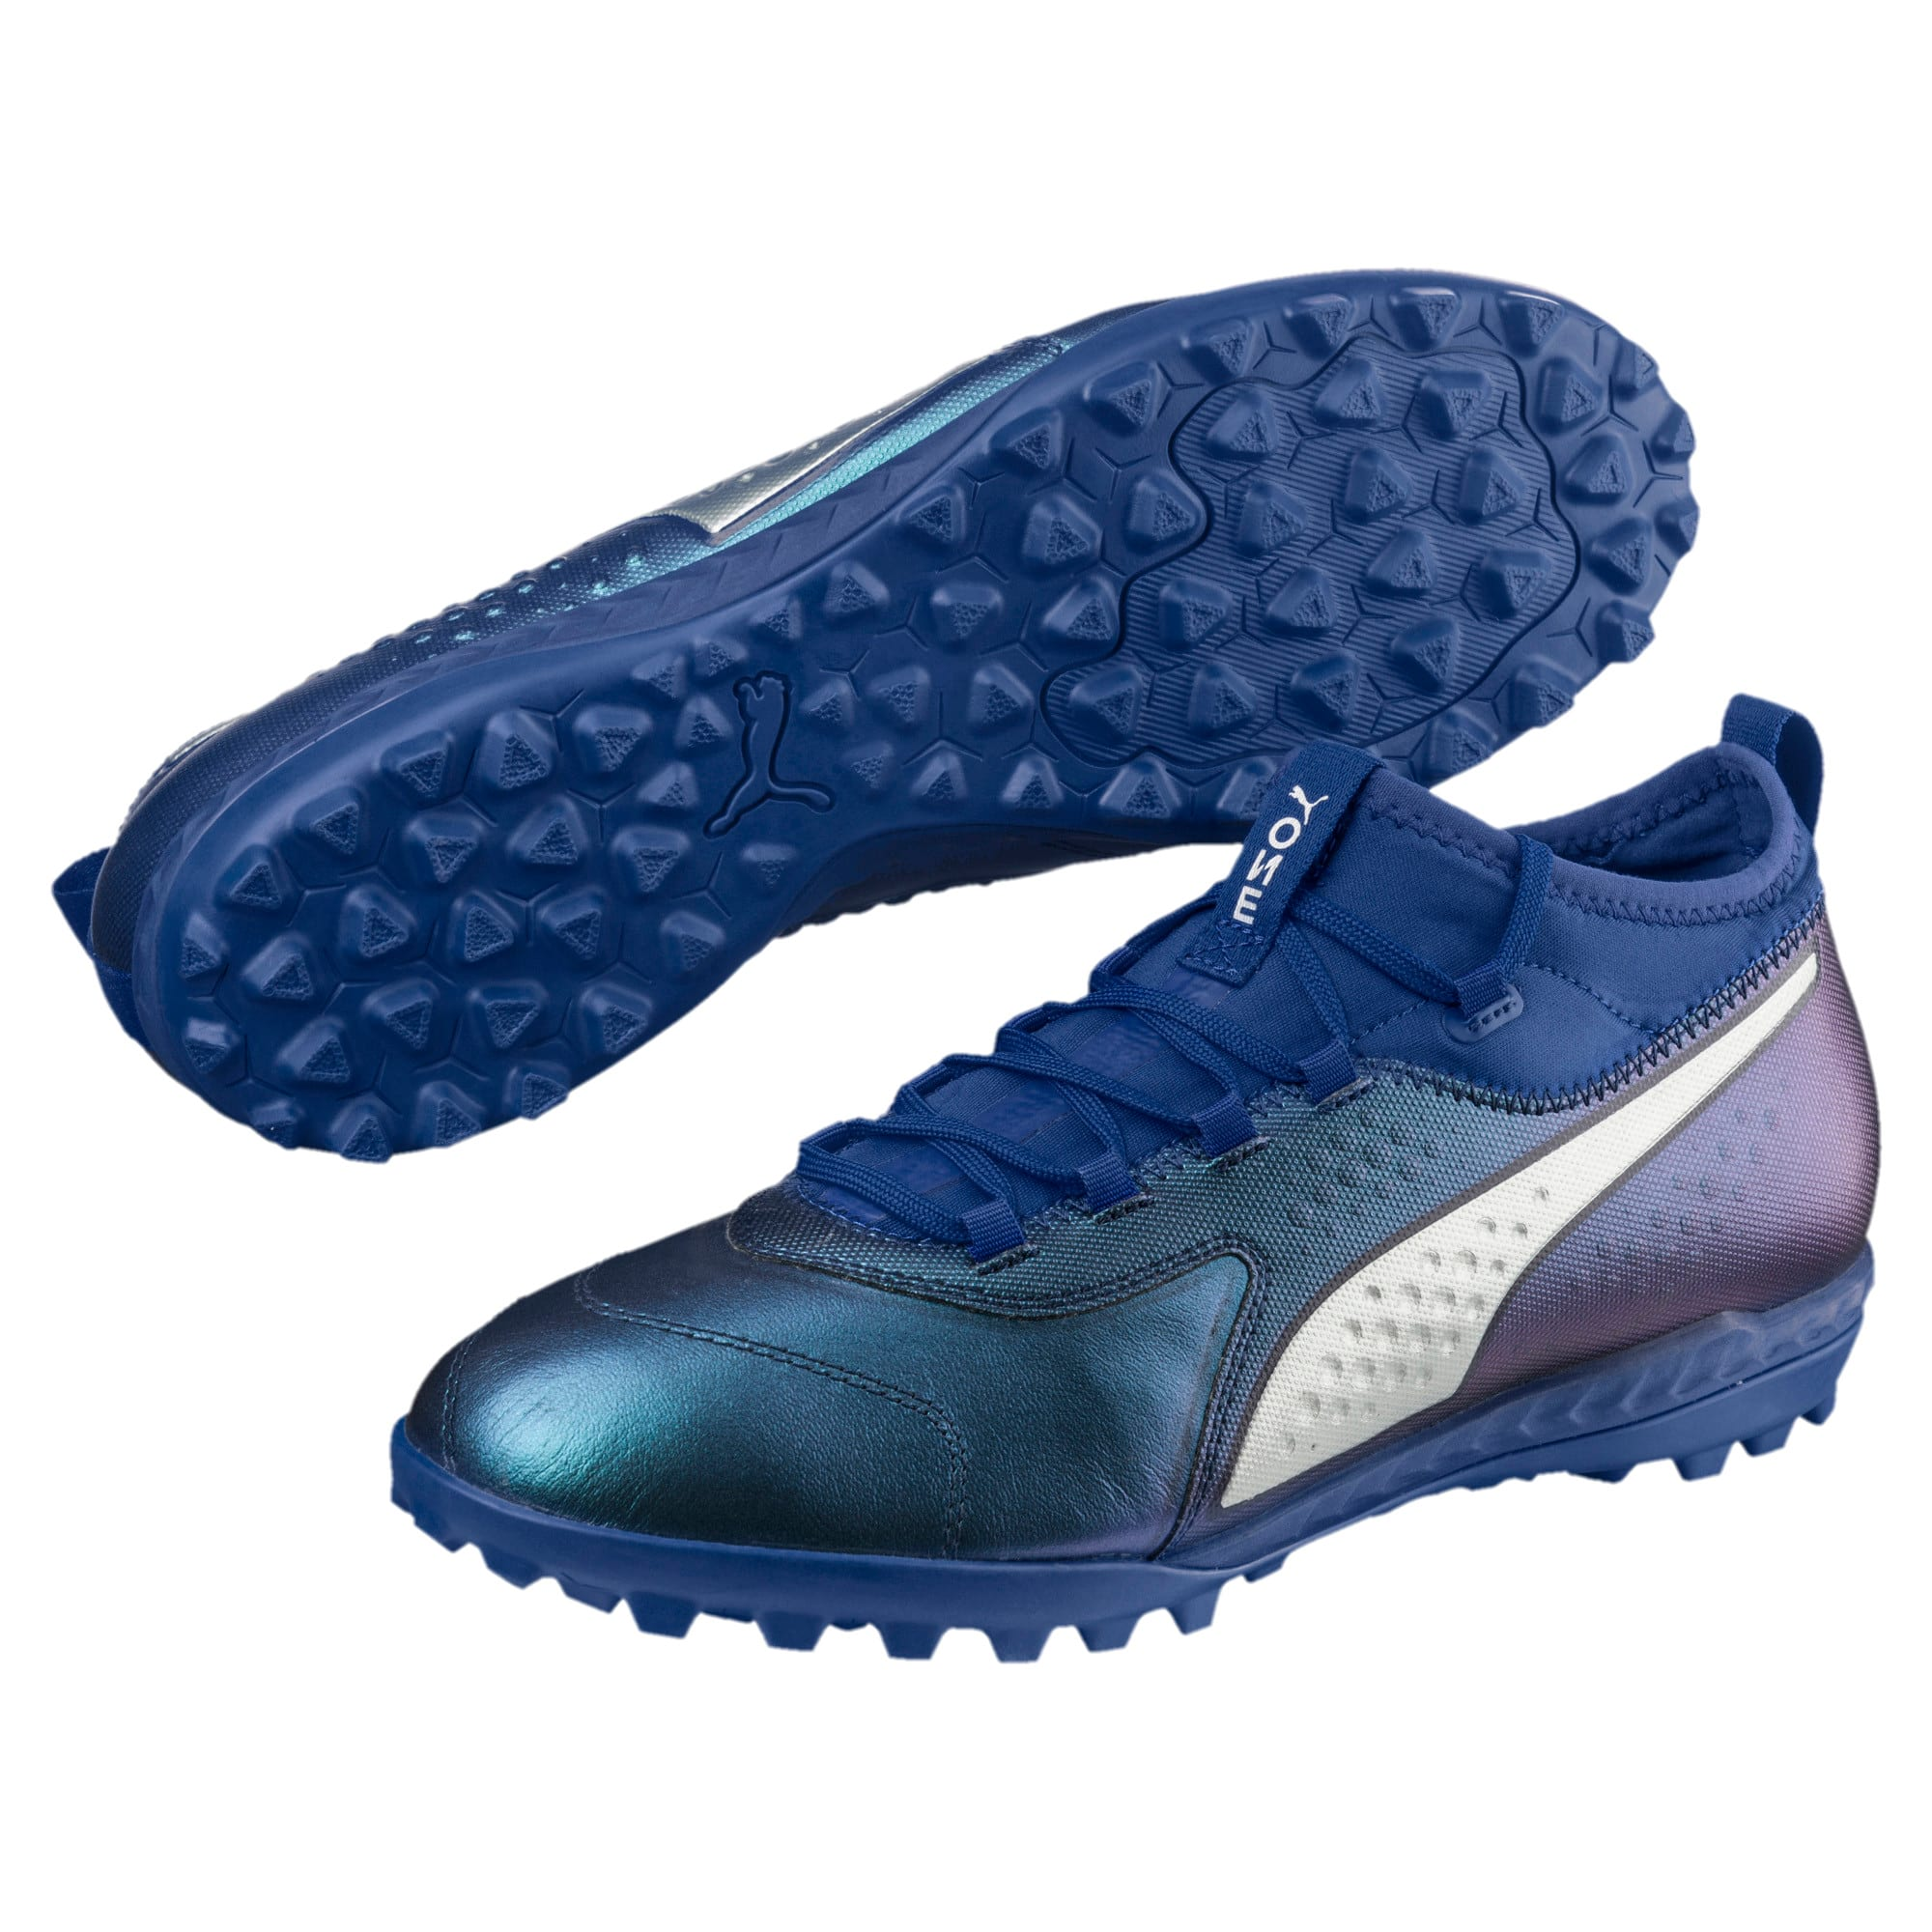 Thumbnail 2 of PUMA ONE 3 TT Men's Soccer Shoes, Sodalite Blue-Silver-Peacoat, medium